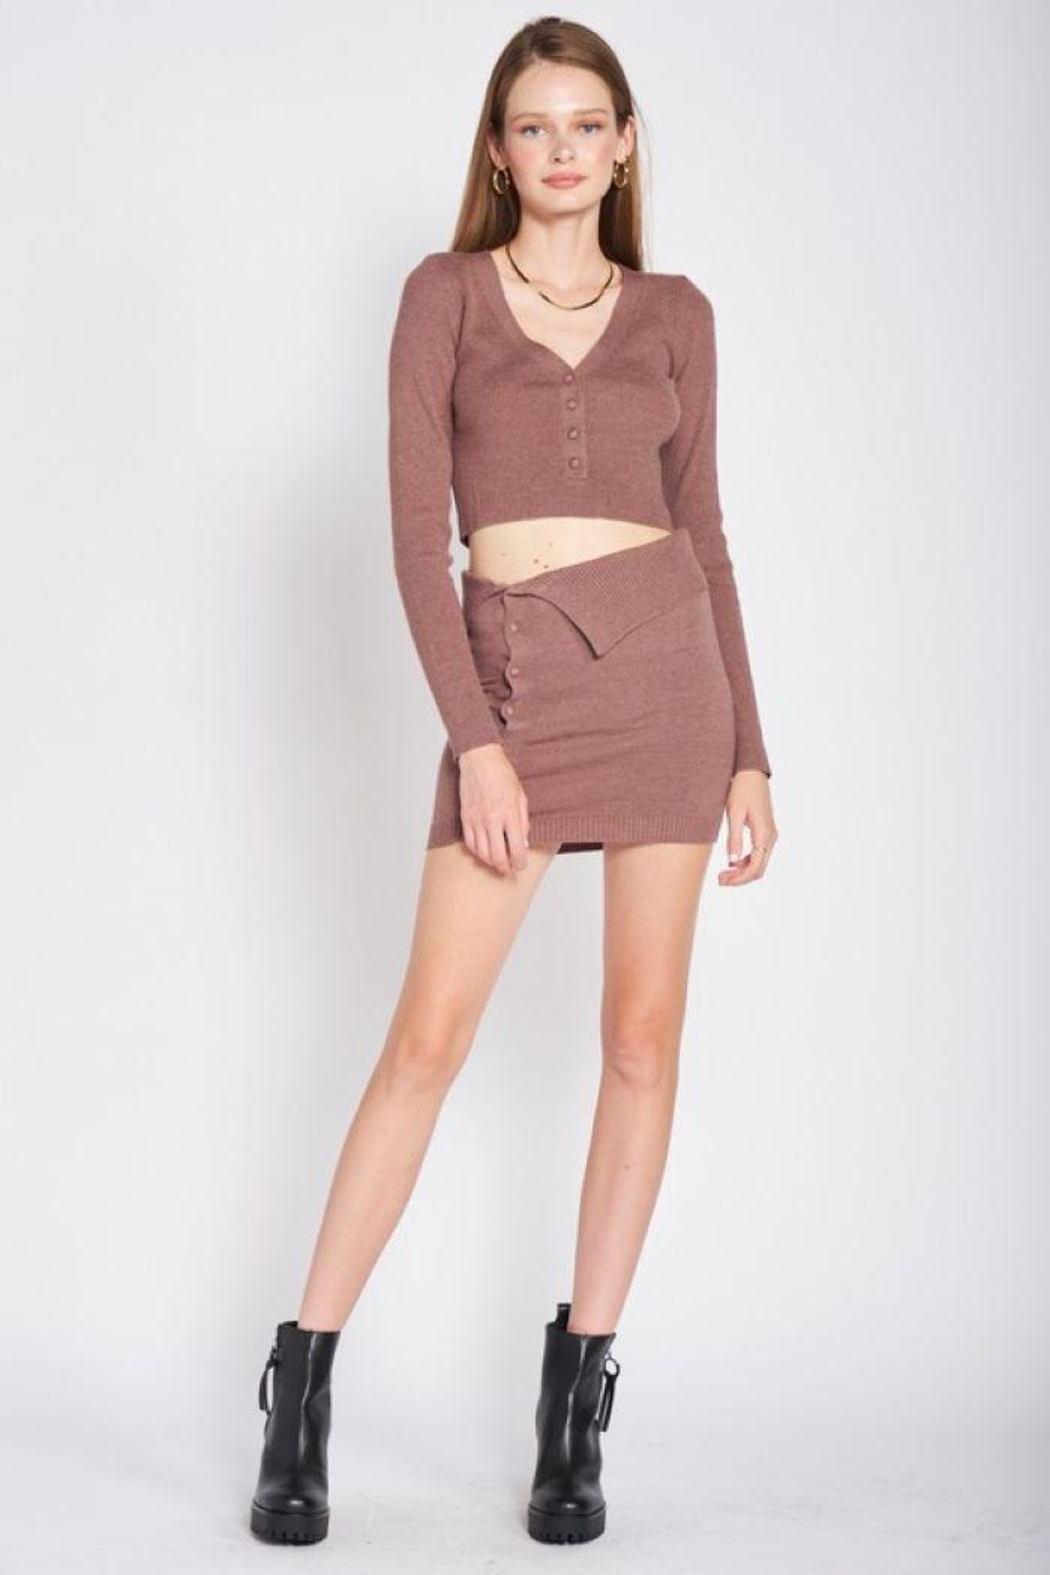 Emory Park Sweater Button Down Crop Top - Main Image